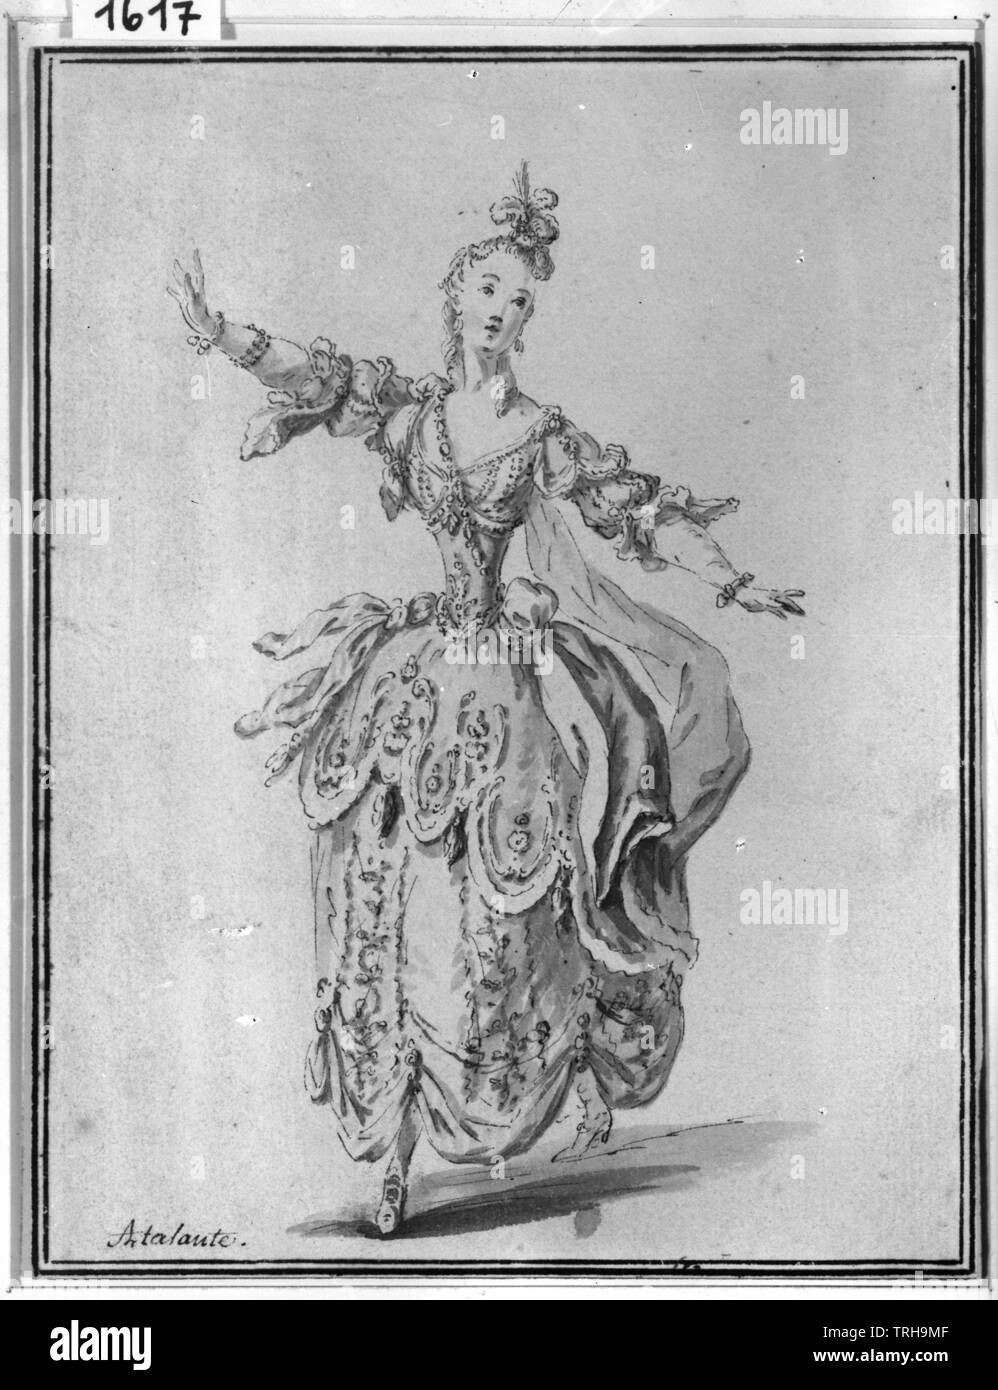 statuette, baroque figurine 'Atalante', copper engraving. Munich, theatre museum, Additional-Rights-Clearance-Info-Not-Available - Stock Image